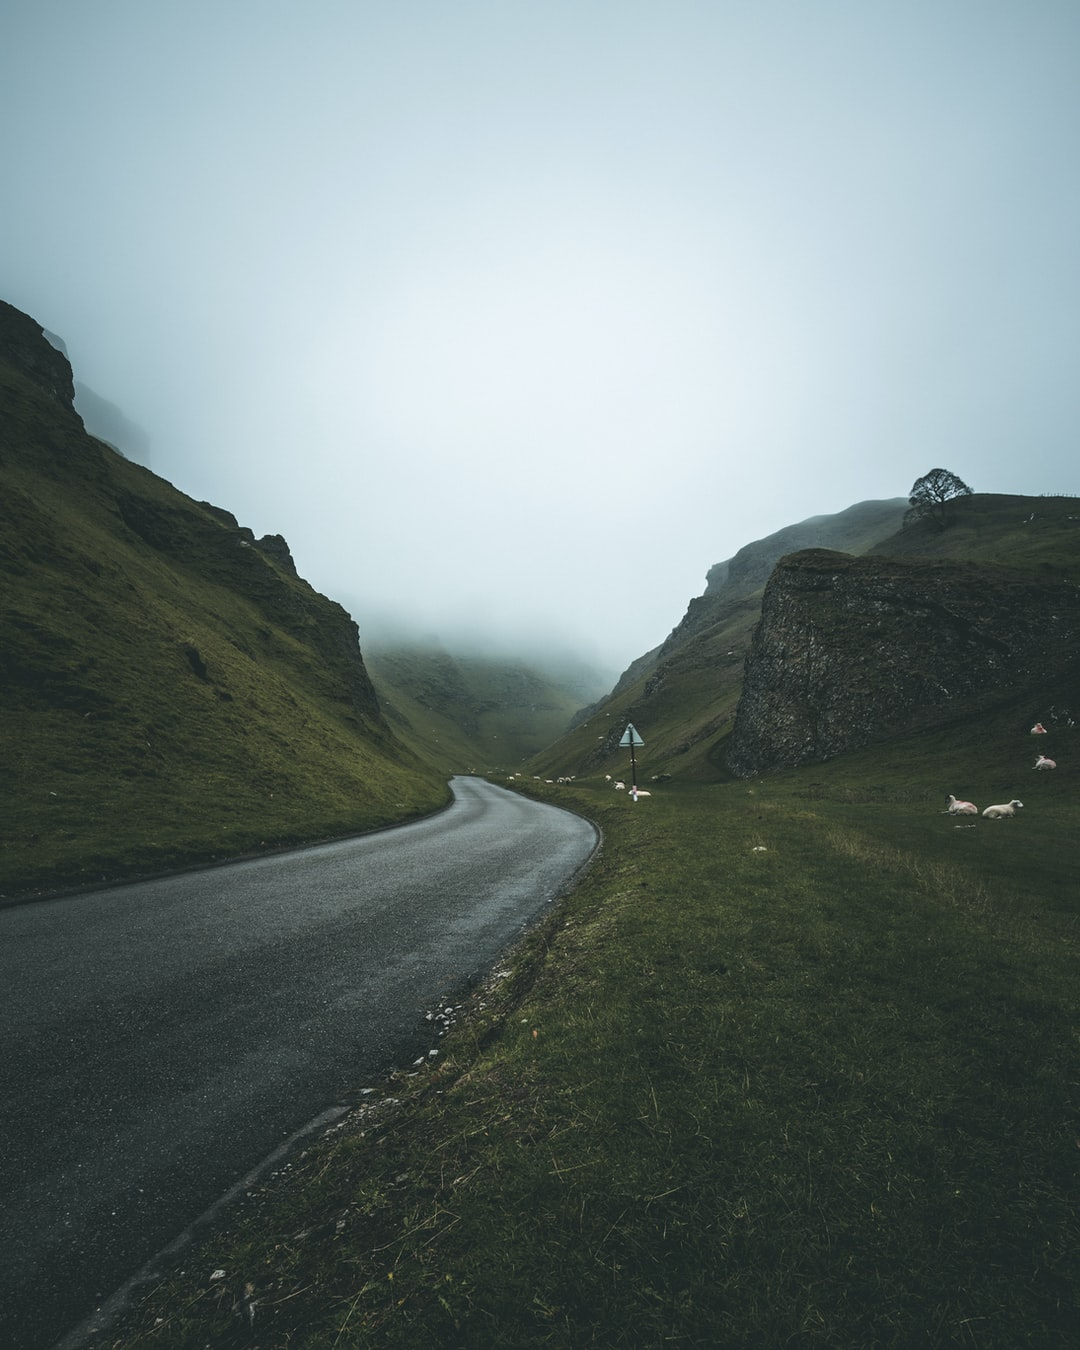 I made the journey up to Winnats Pass in the Peak District, and was thrilled to be driving through thick fog!